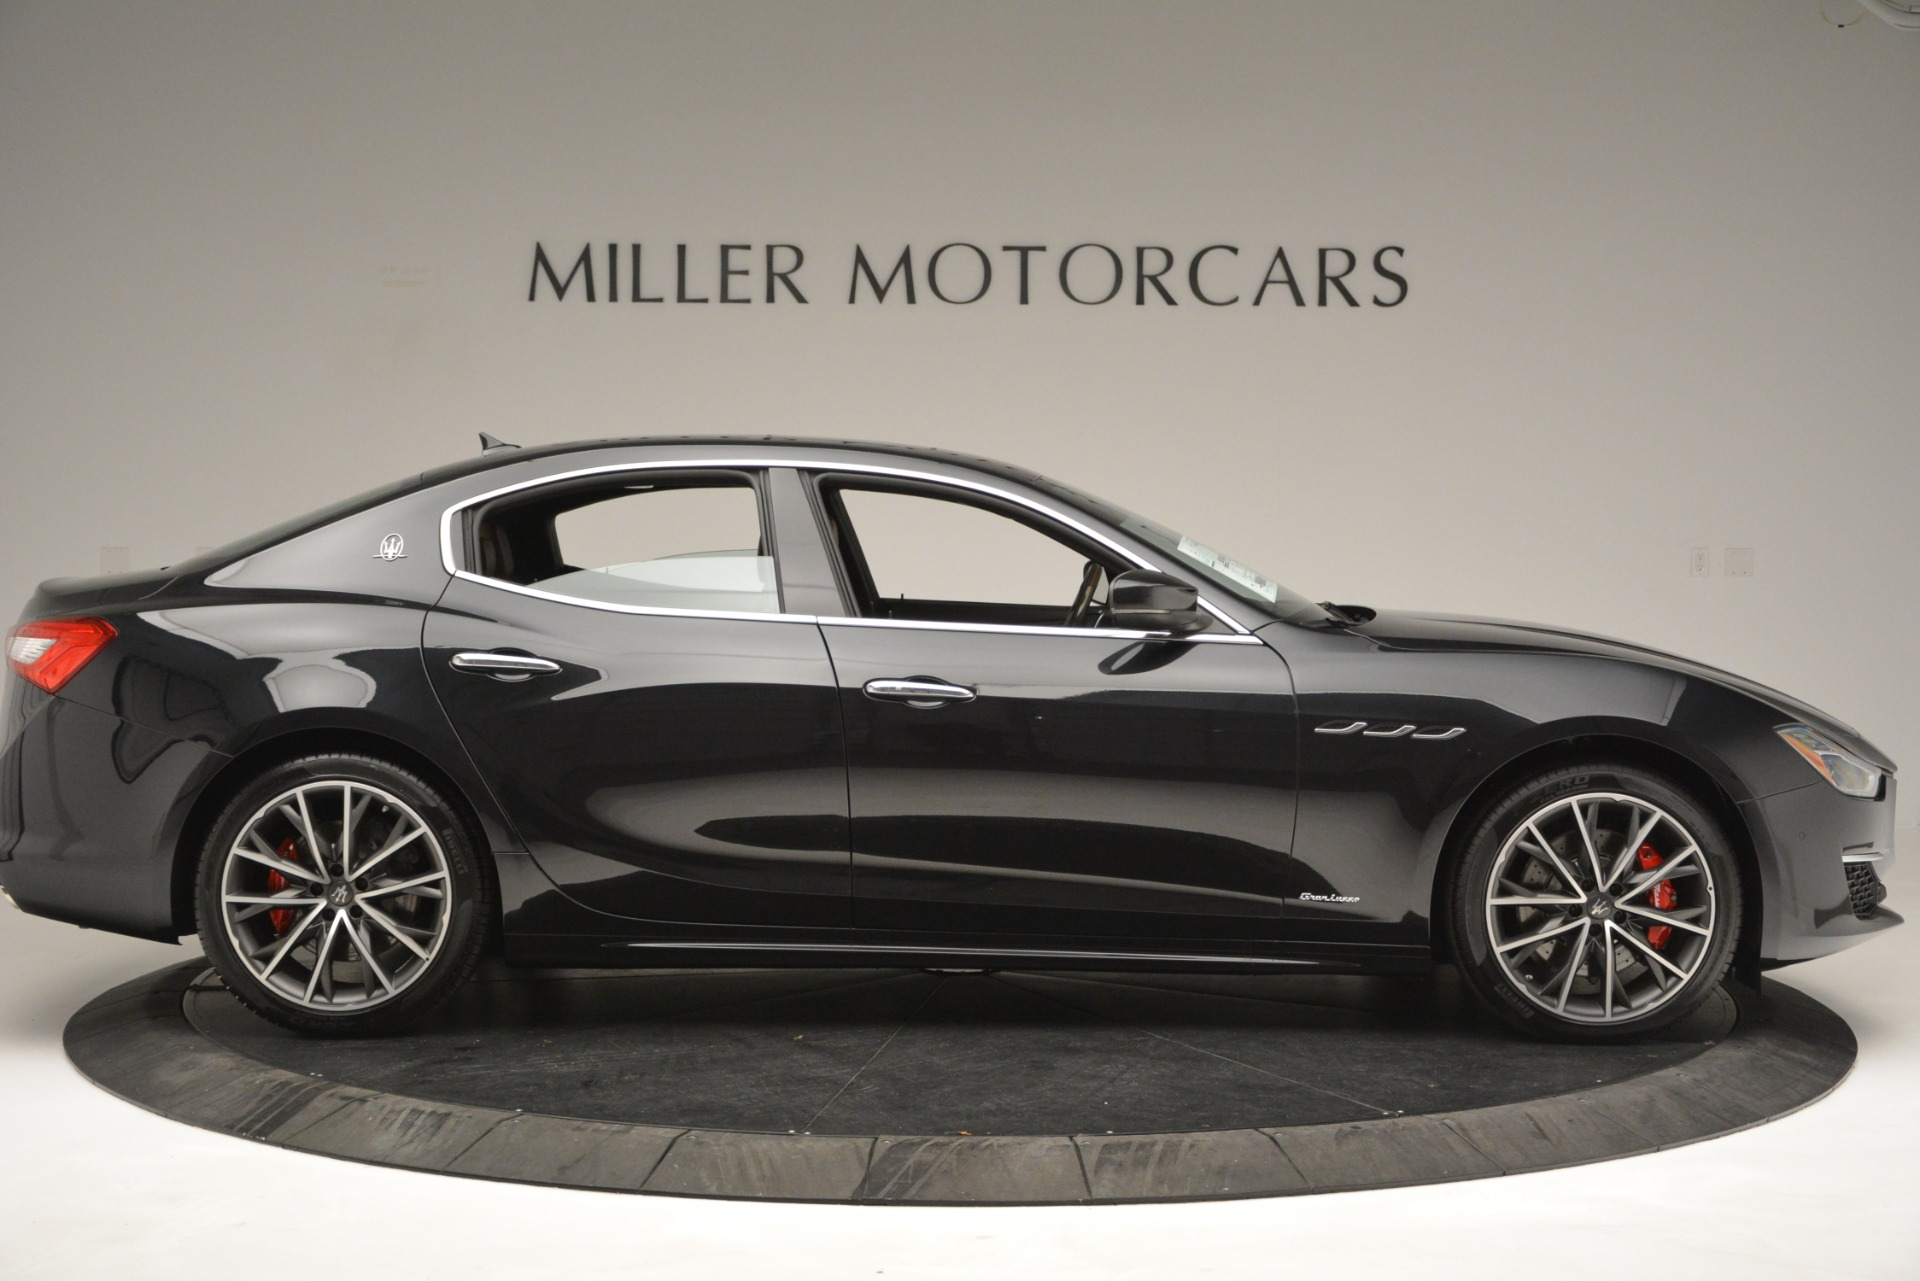 New 2019 Maserati Ghibli S Q4 GranLusso For Sale In Greenwich, CT. Alfa Romeo of Greenwich, M2223 2590_p9